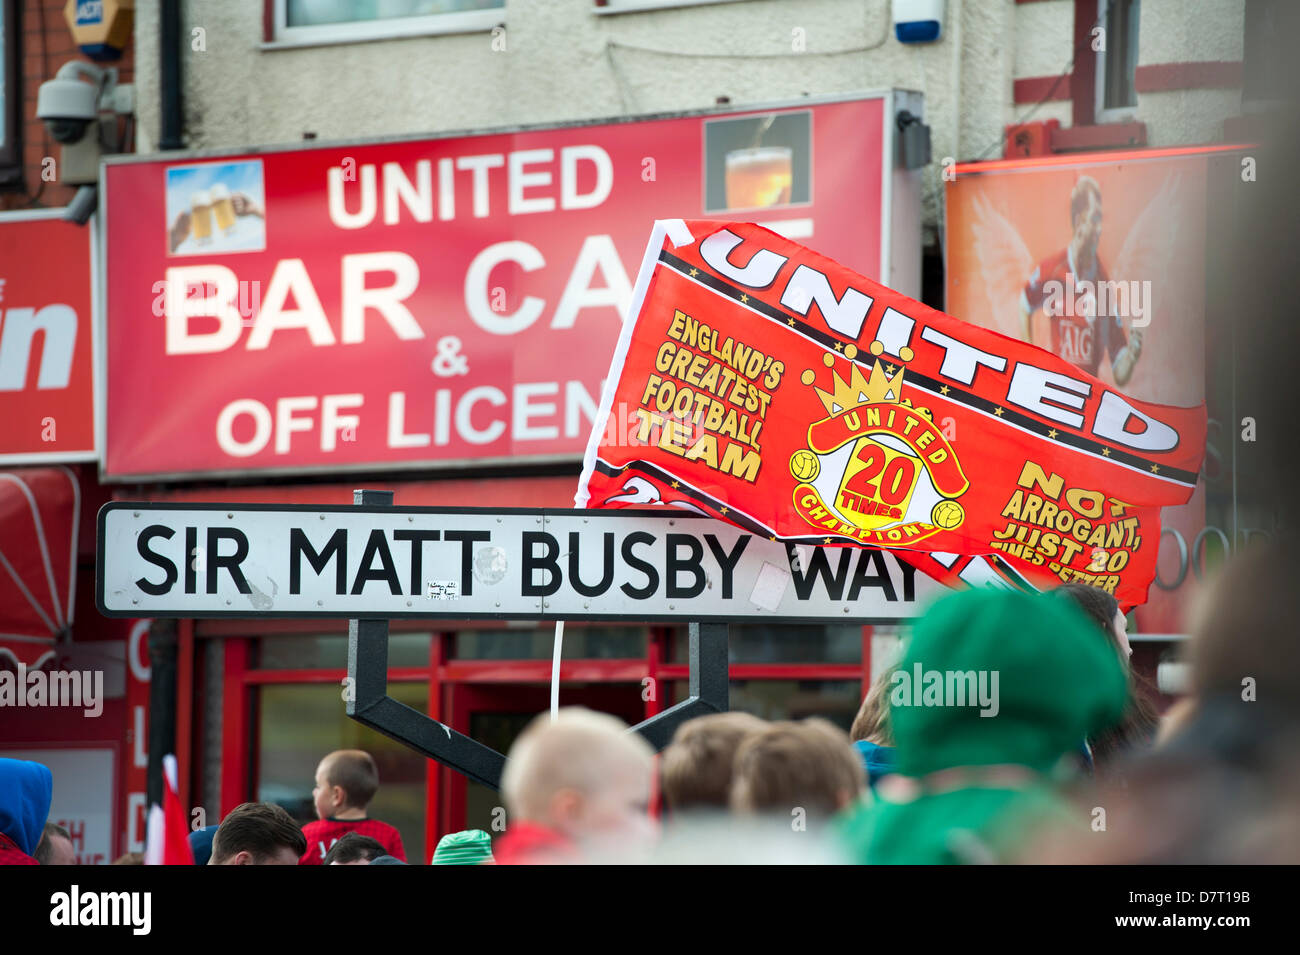 Manchester, UK. 13th May, 2013. flags draped over the road sign for Sir Matt Busby Way outside old trafford football - Stock Image